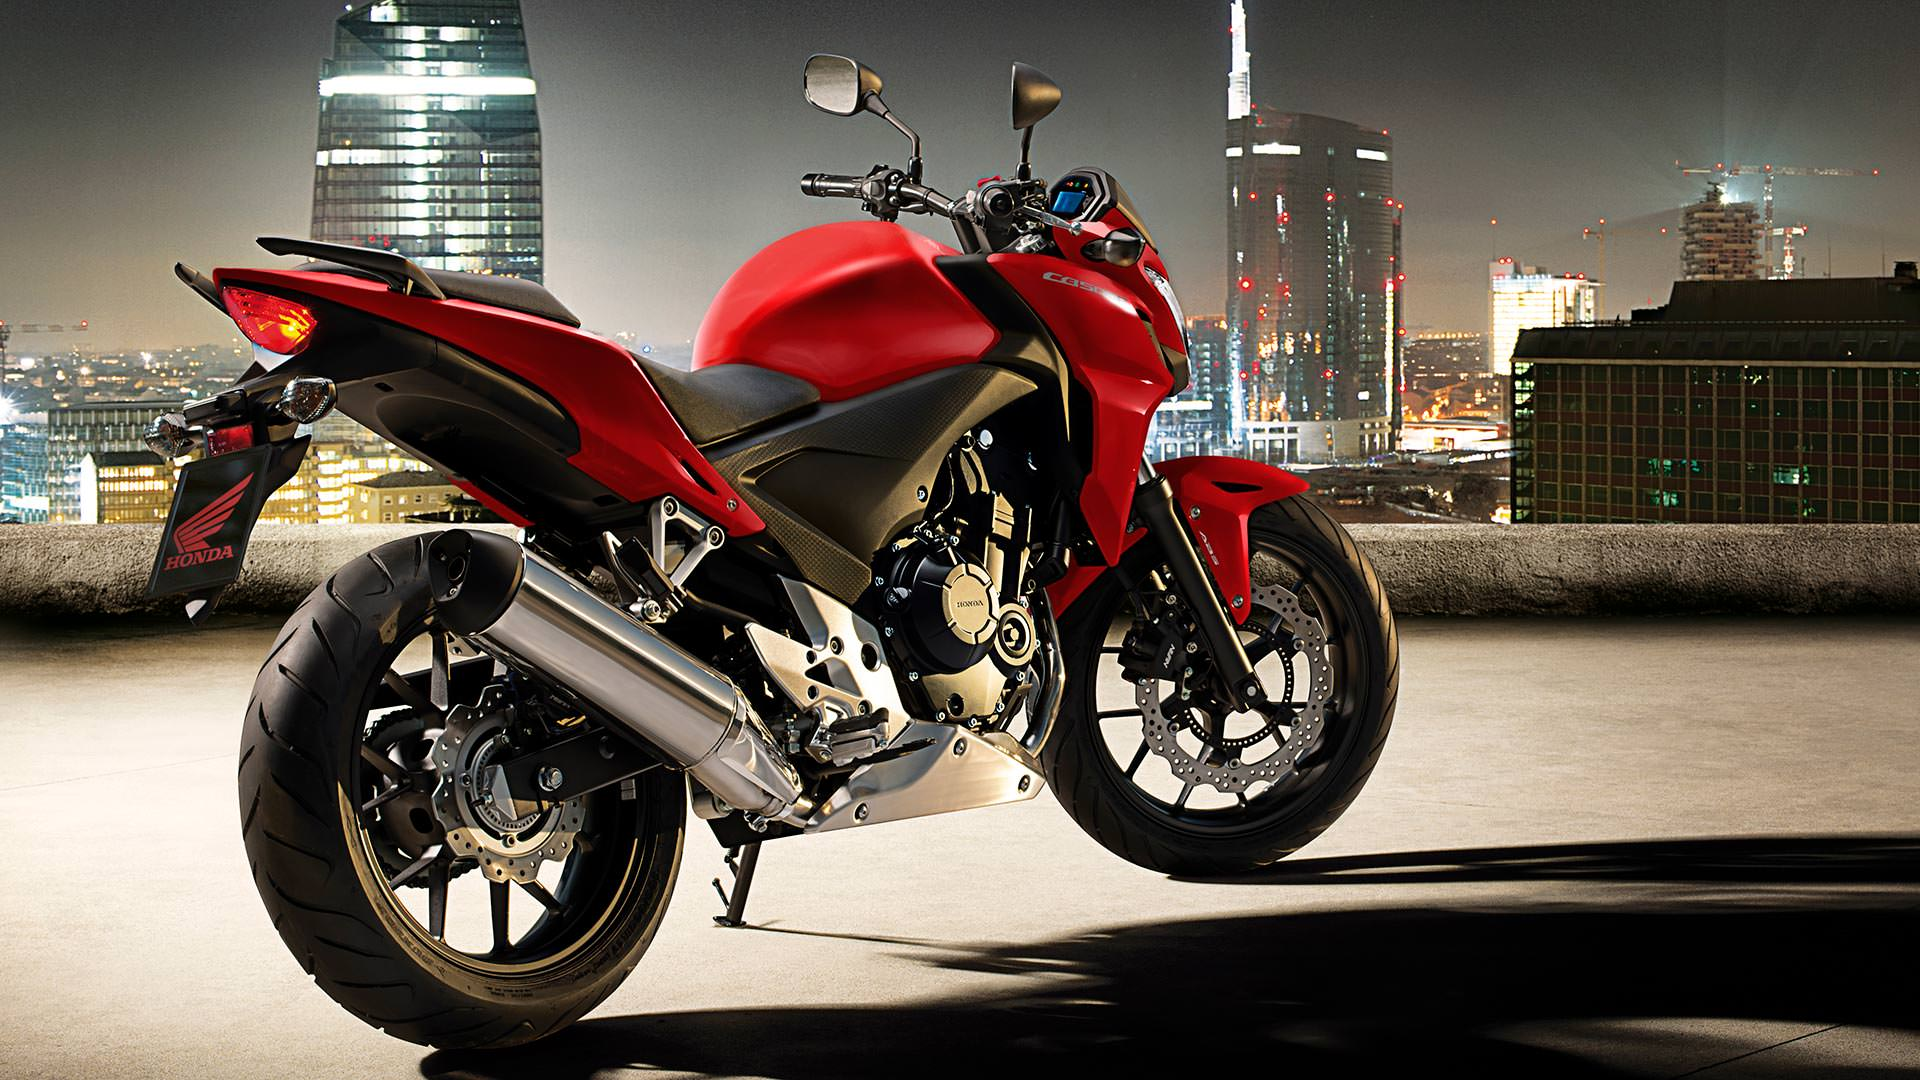 2013 Honda CB500F ABS Review Specs Pictures Videos